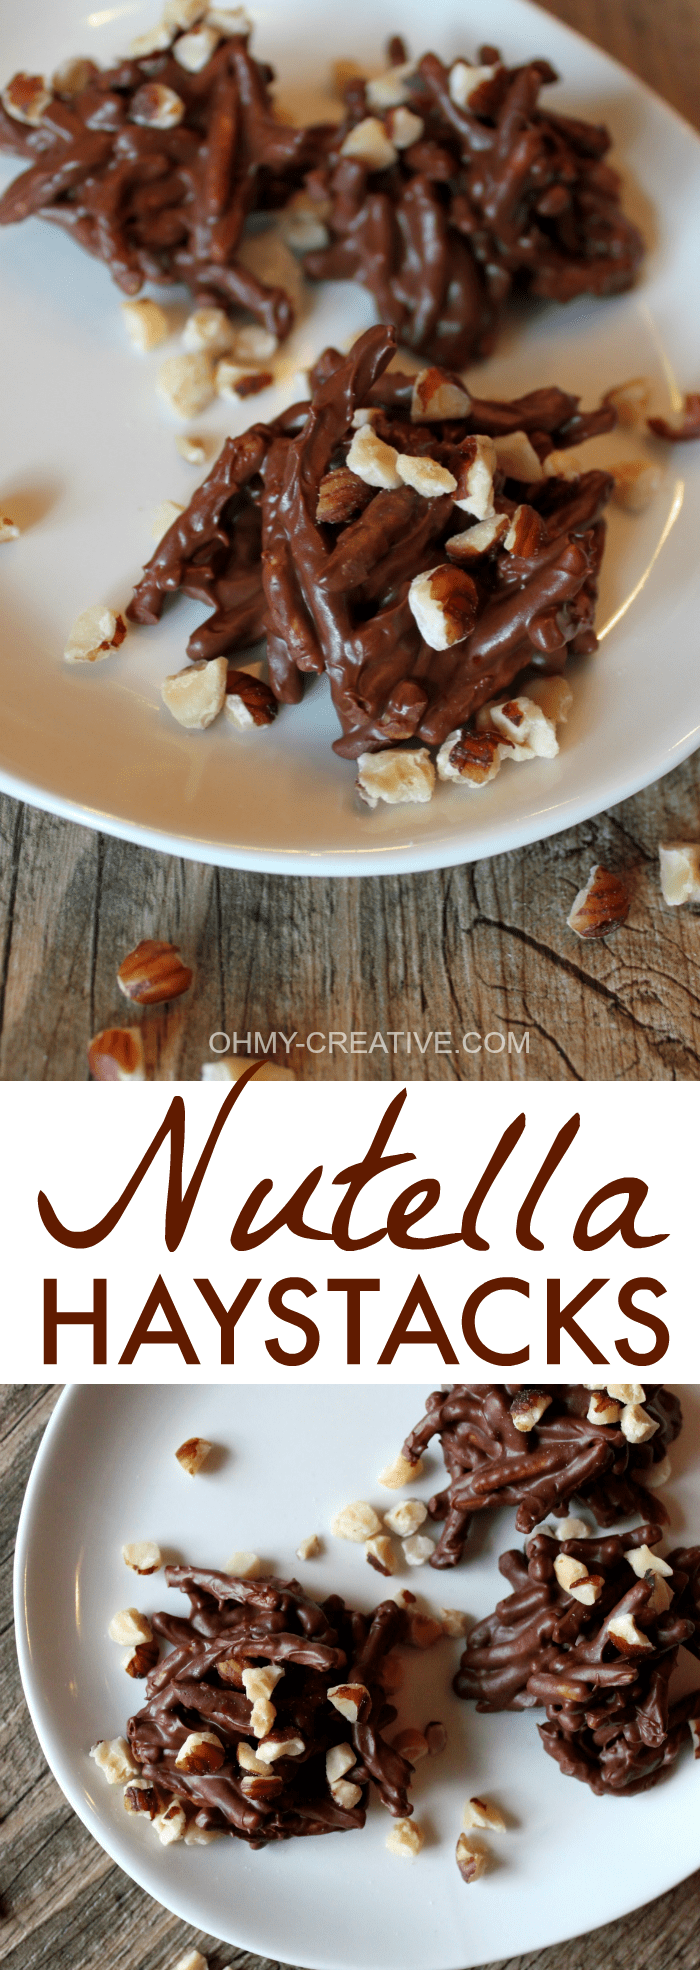 If you are a fan of Nutella these no bake Nutella Haystacks are so yummy and very simple to make. They never last long in our house! | OHMY-CREATIVE.COM